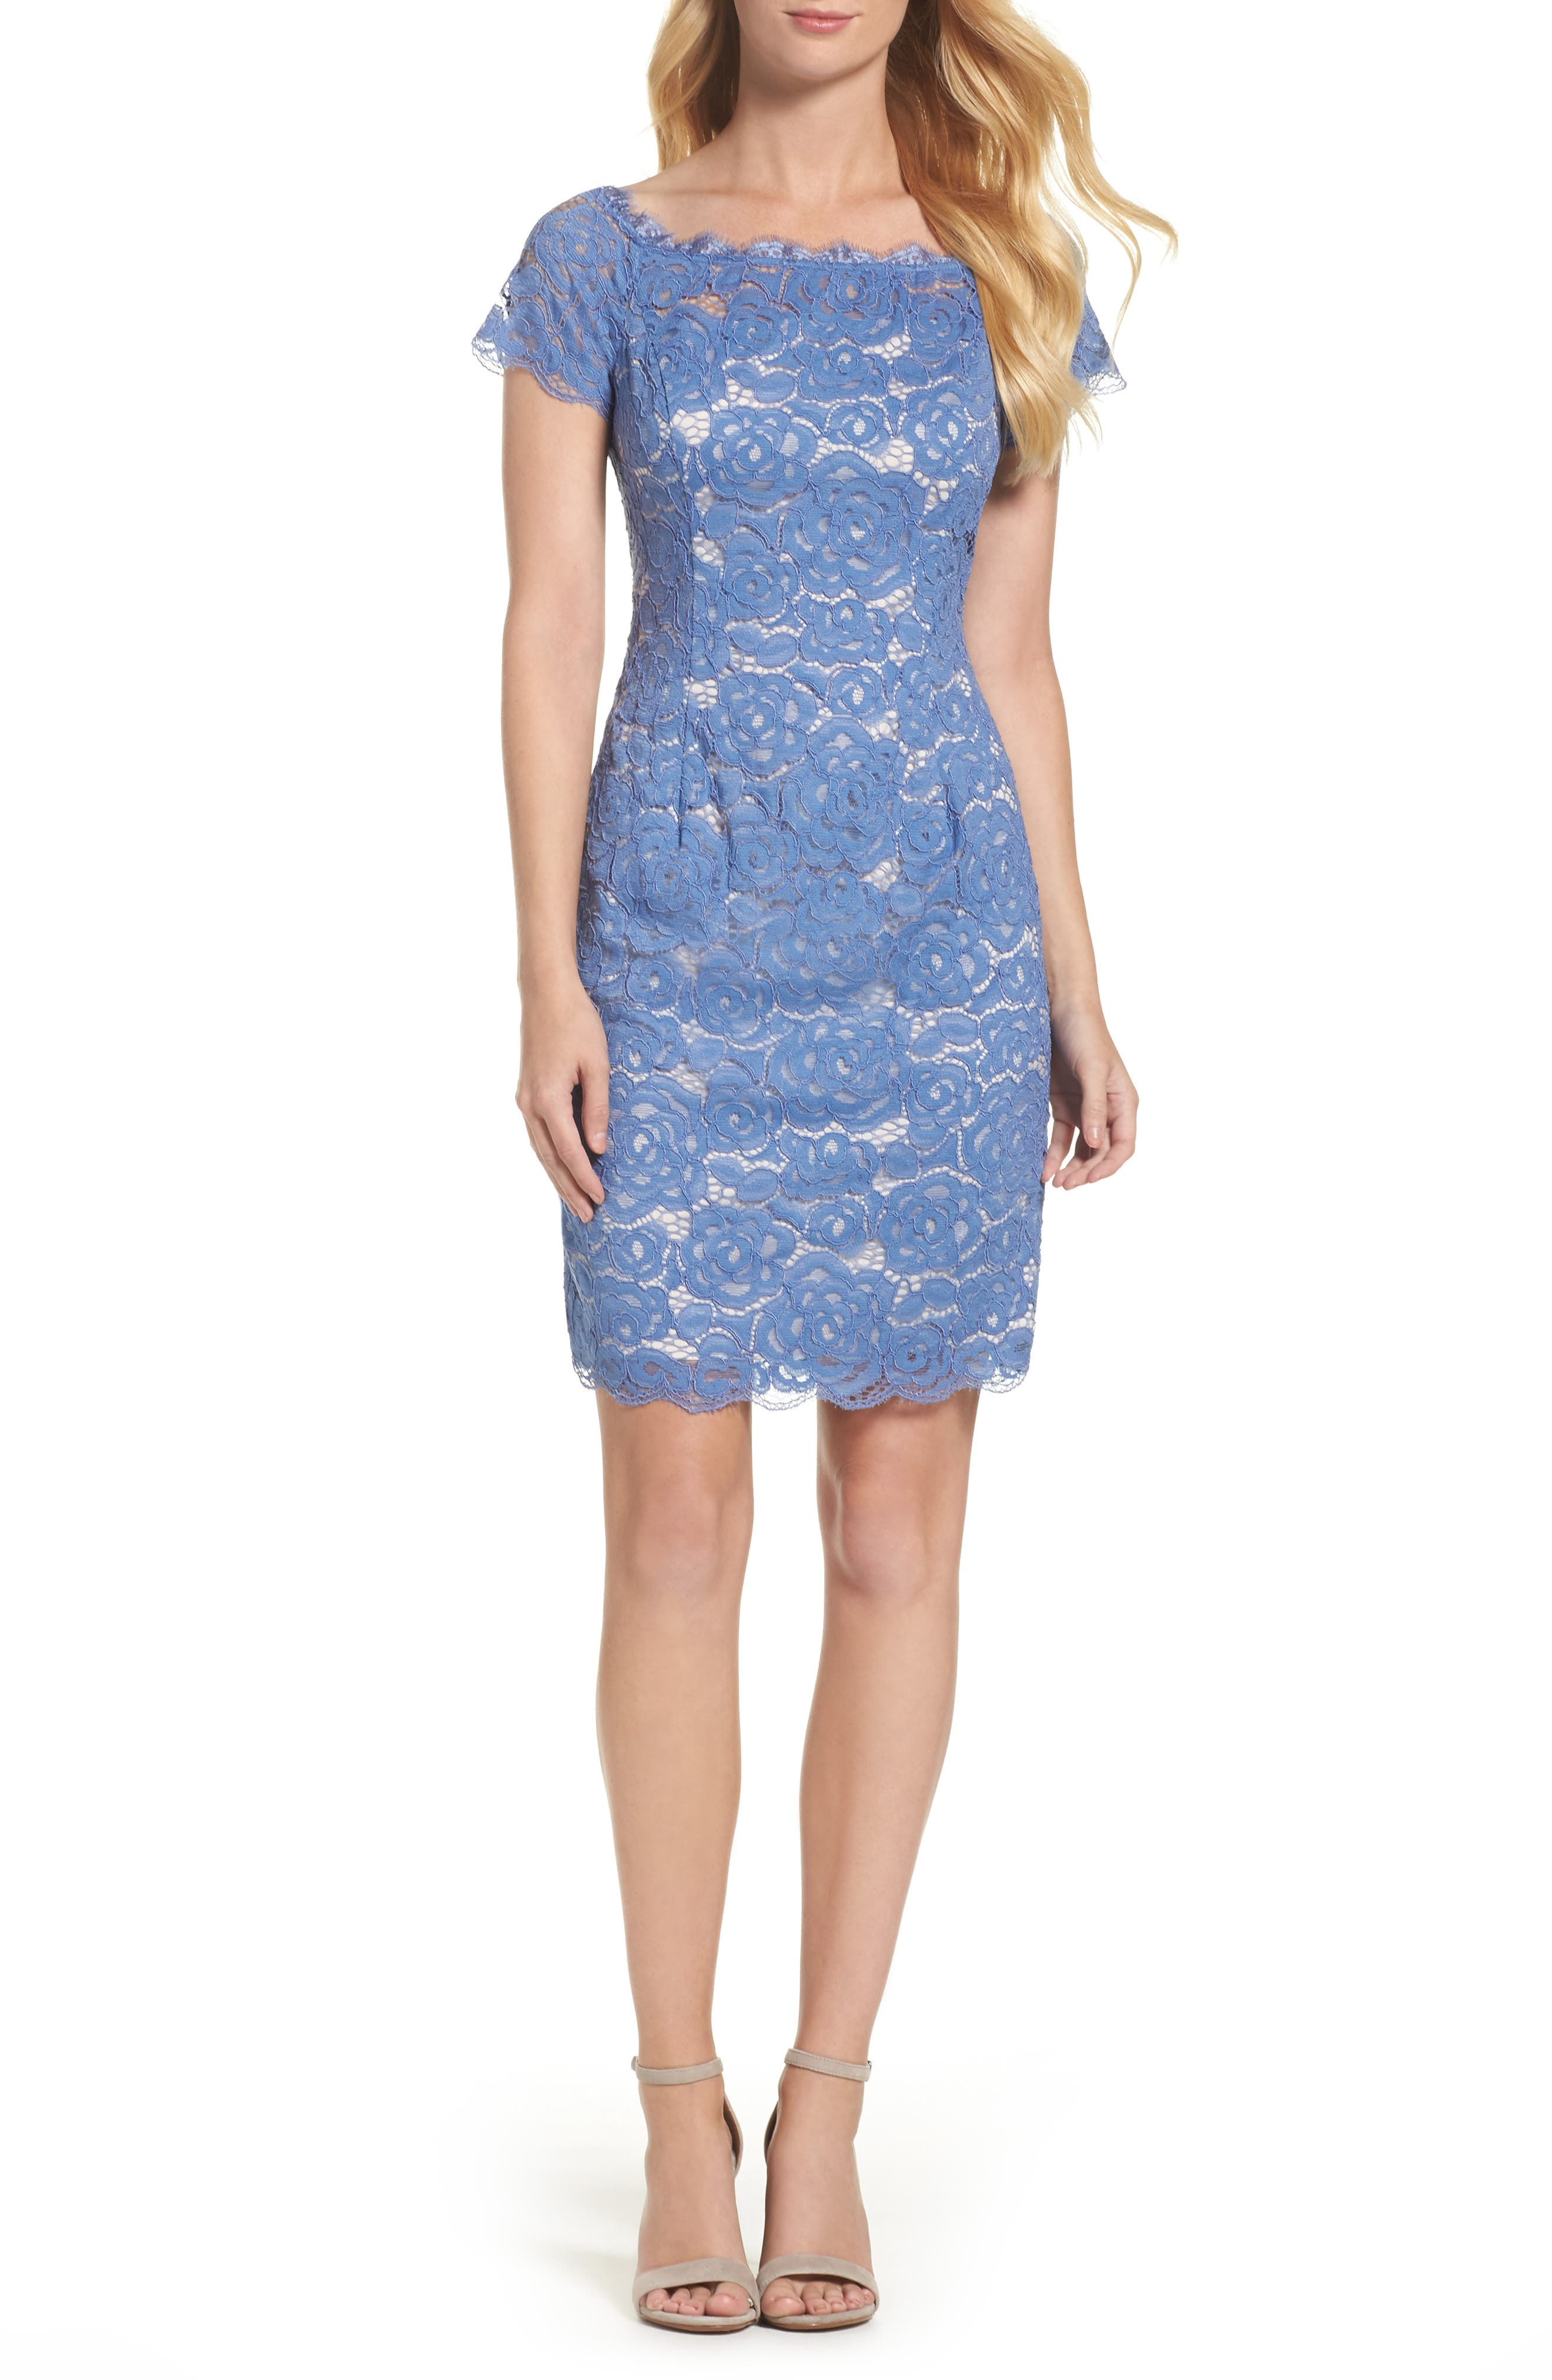 Alternate Image 1 Selected - Adrianna Papell Off the Shoulder Lace Sheath Dress (Regular & Petite)